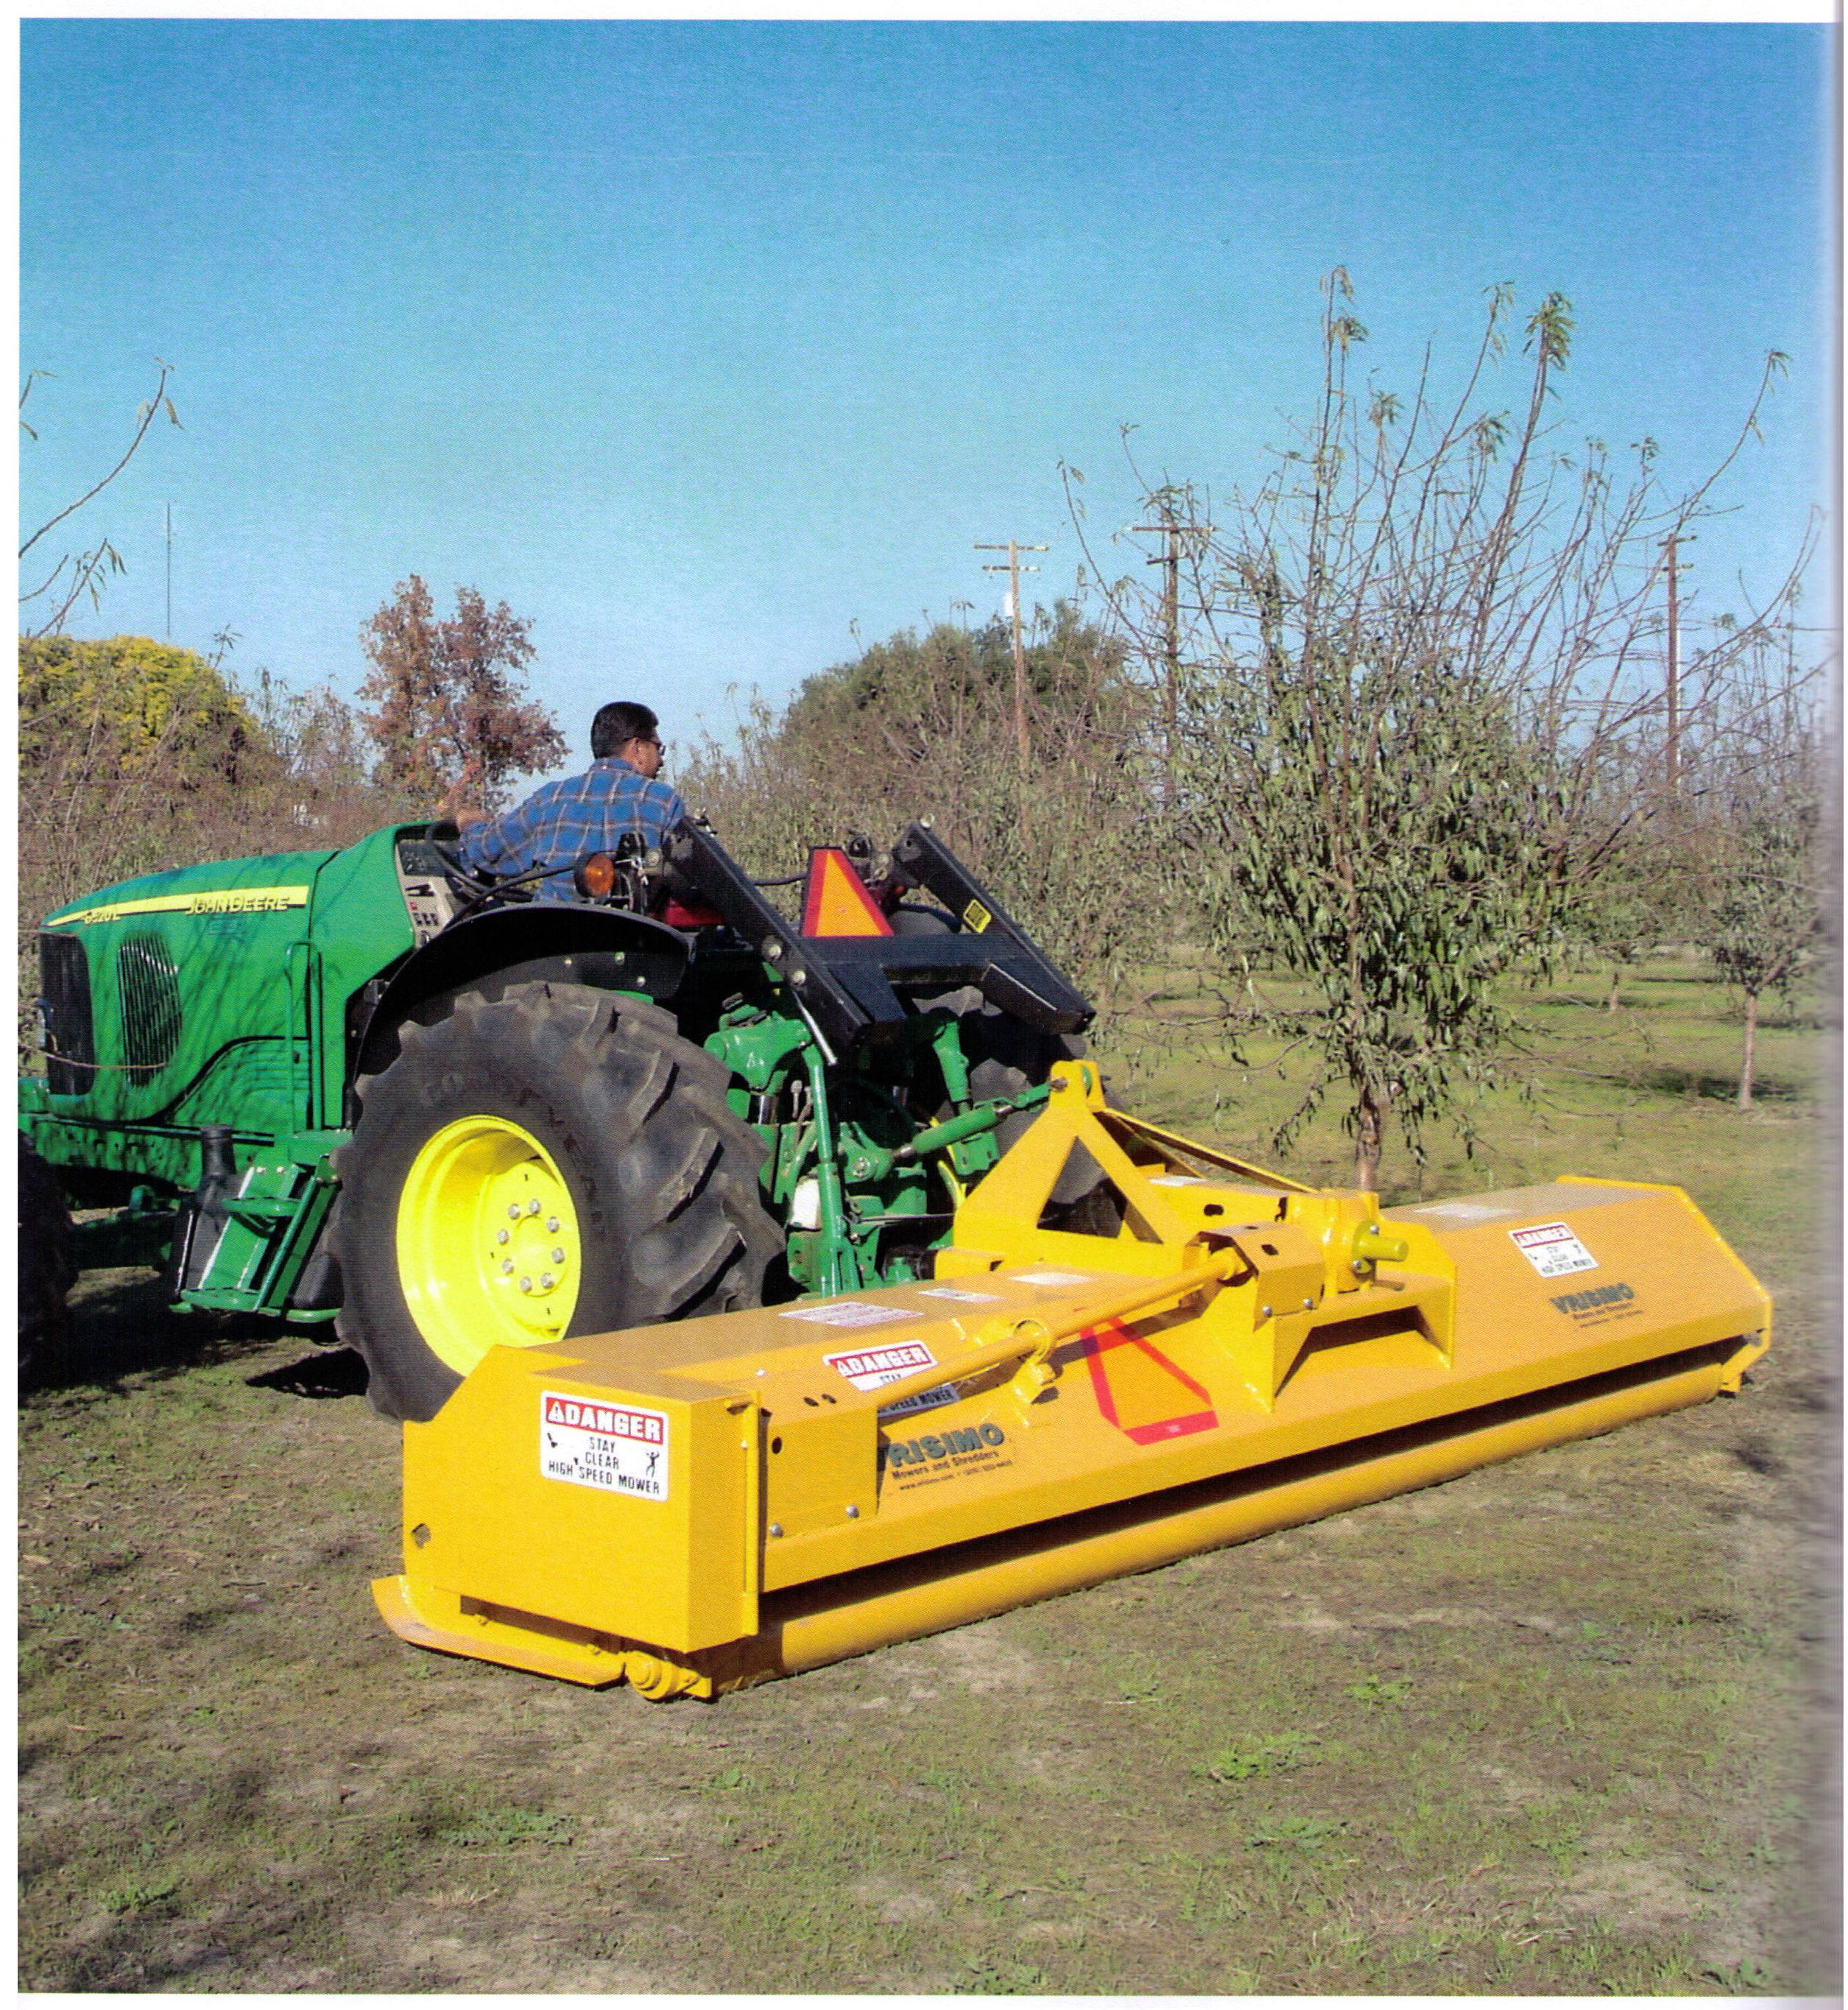 Orchard LP Series Flail Mower Available In Widths Up To 15 Feet